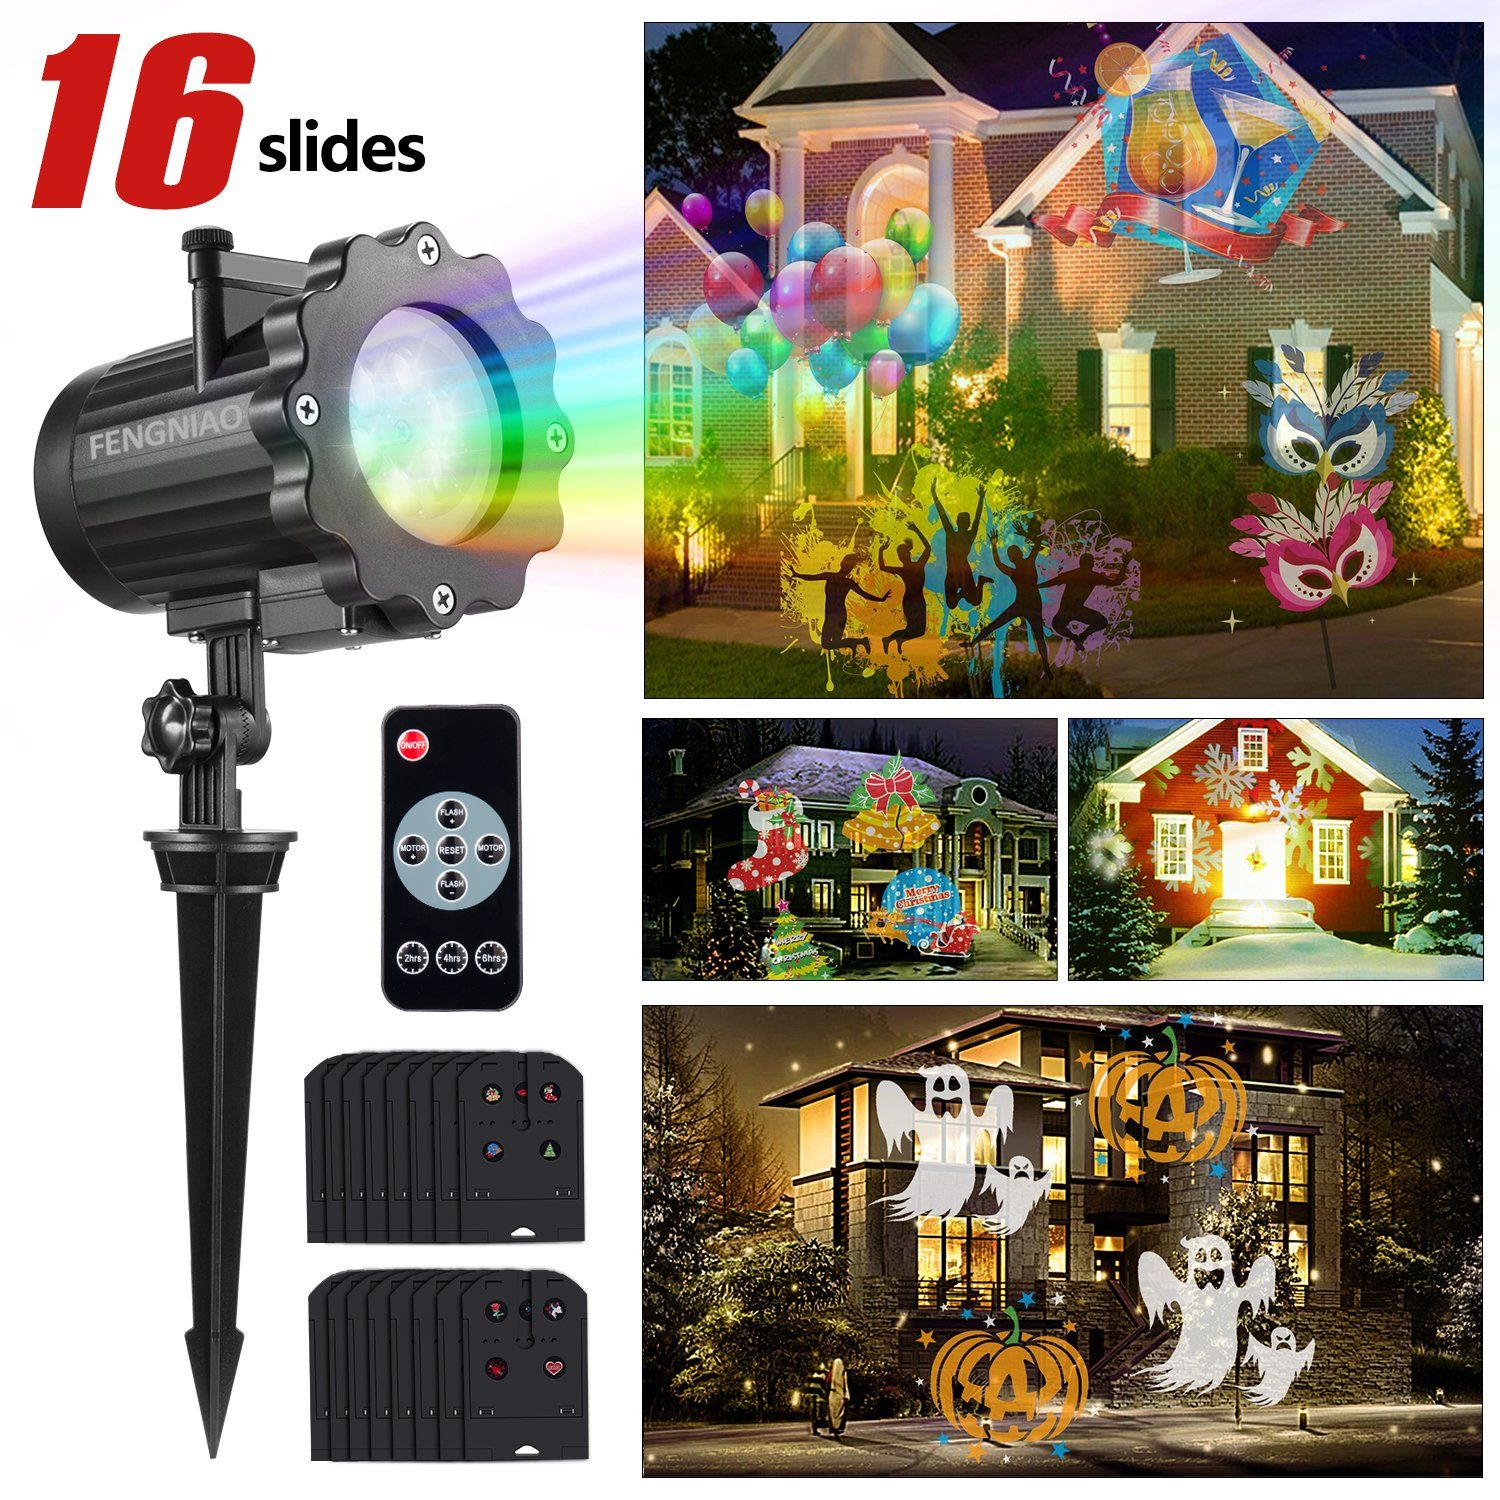 Led Christmas Light Projector, FengNiao led projector light show ...